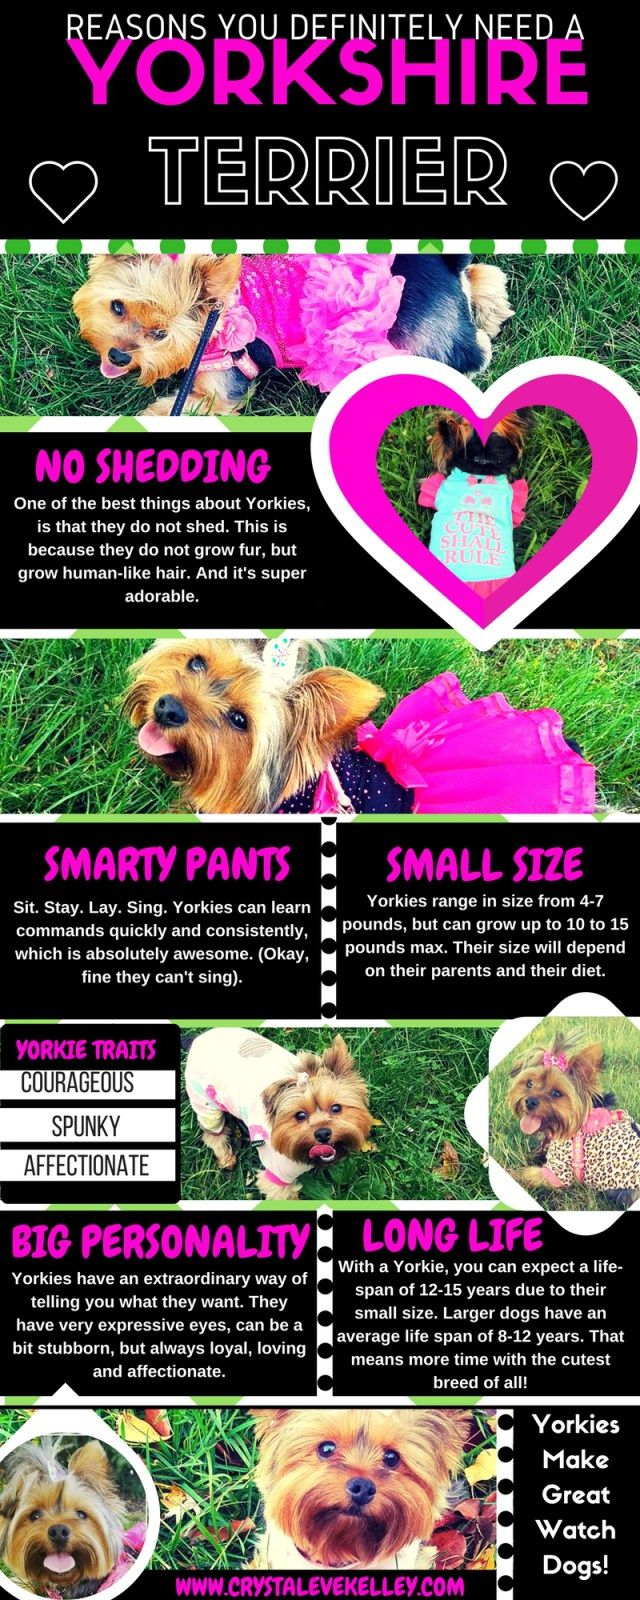 Reasons To Get A Yorkie Yorkshire Terrier Yorkshire Terrier Yorkie Baby Yorkie